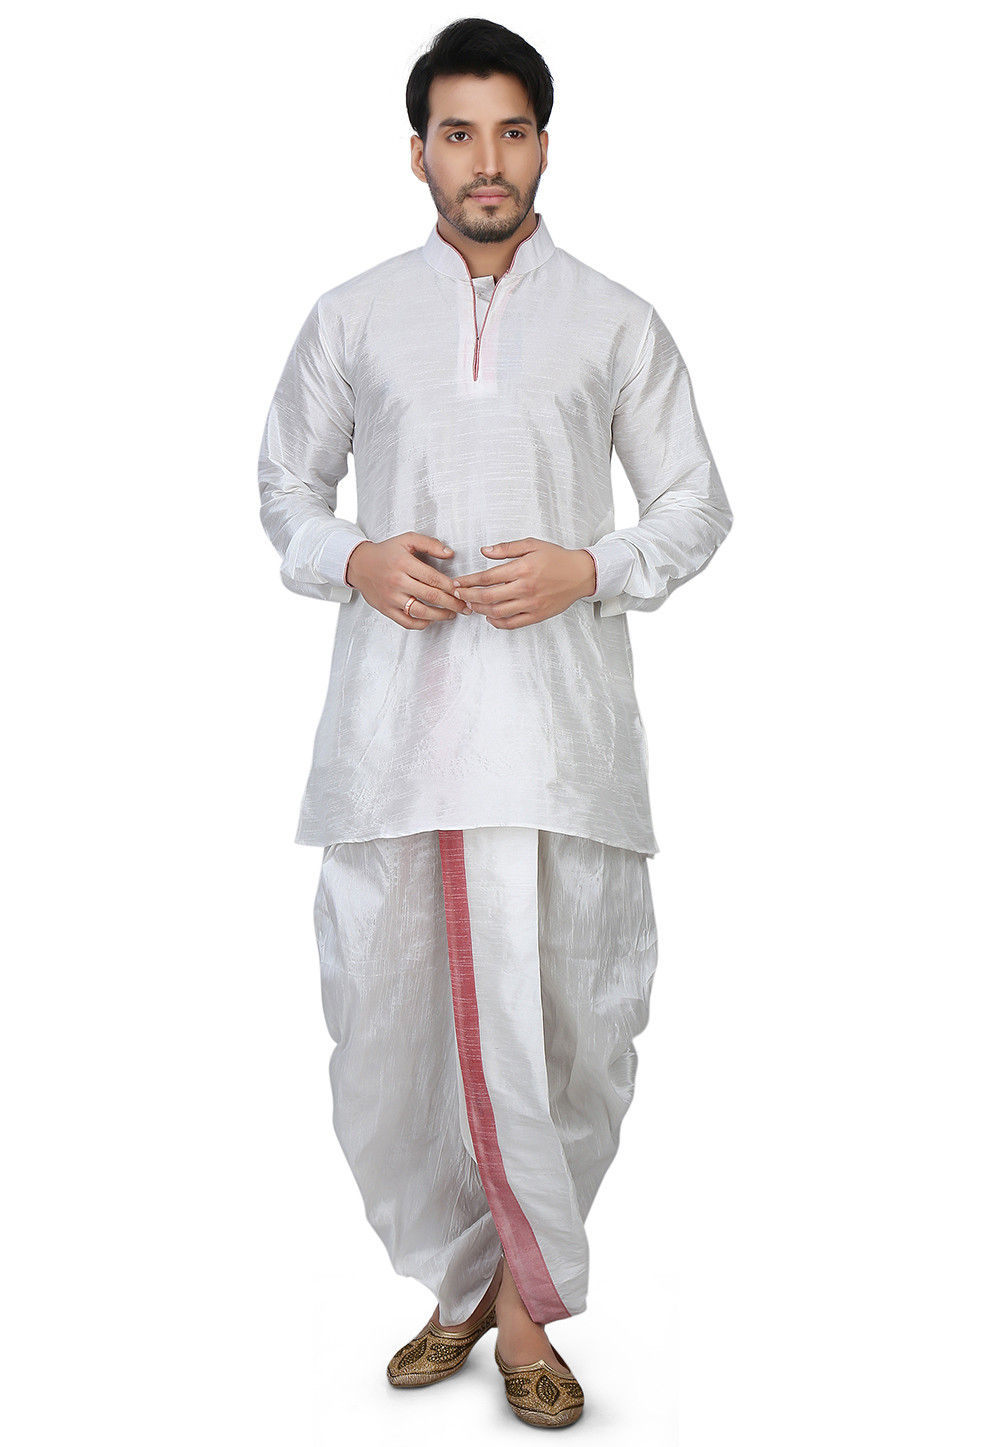 Contrast Patch Border Dupion Silk Short Dhoti Kurta in White